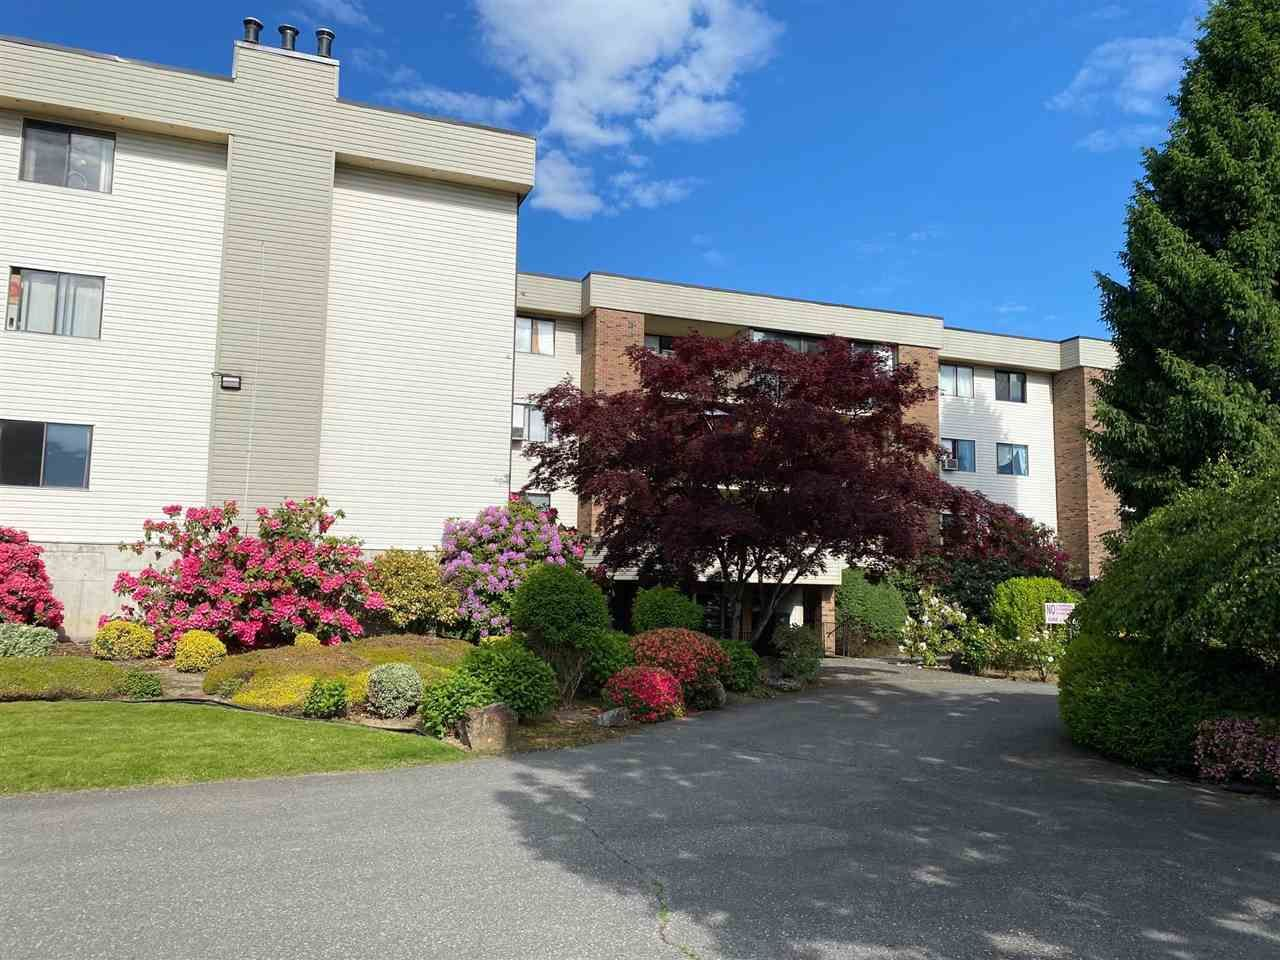 """Main Photo: 1305 45650 MCINTOSH Drive in Chilliwack: Chilliwack W Young-Well Condo for sale in """"PHEONIXDALE 1"""" : MLS®# R2582740"""